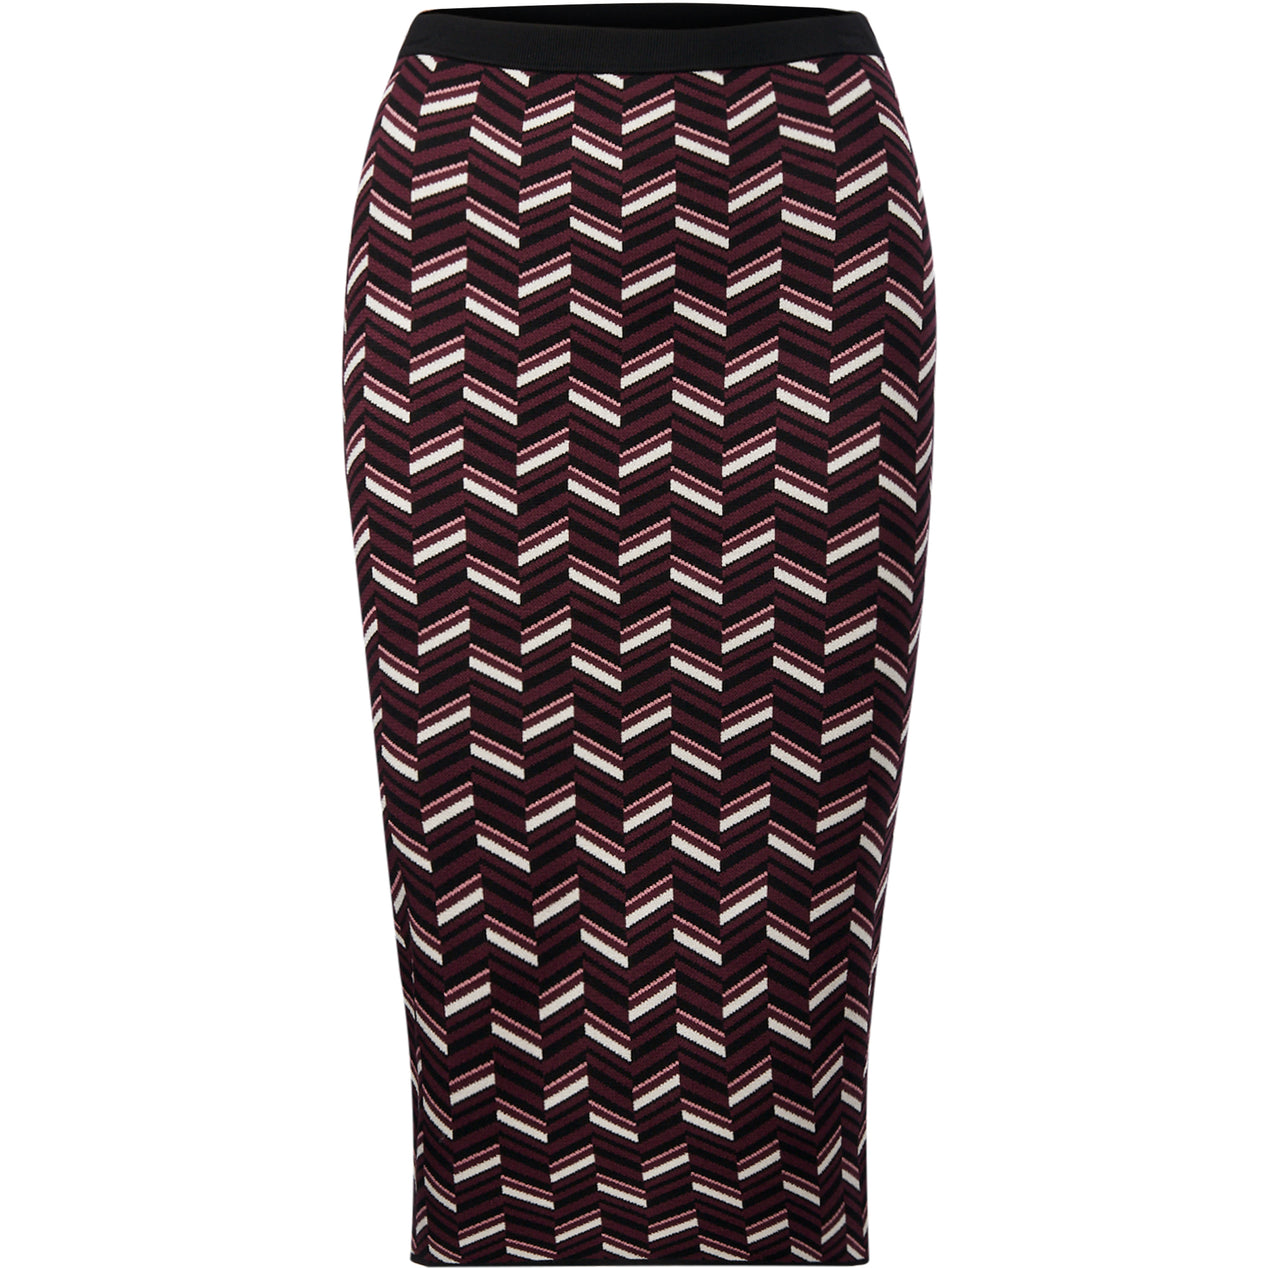 fe327652d93 Michael Kors Chic Chevron Jacquard Skirt - Women s